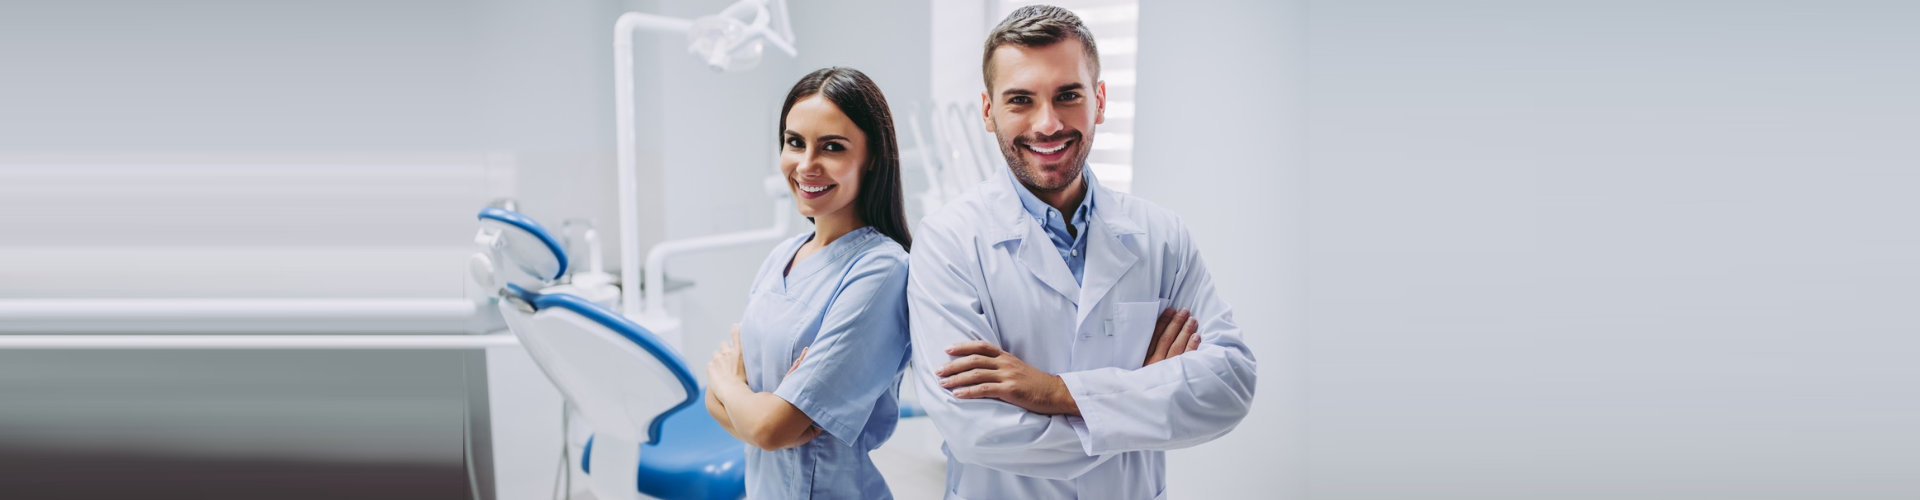 smiling doctor and assistant with crossed hands